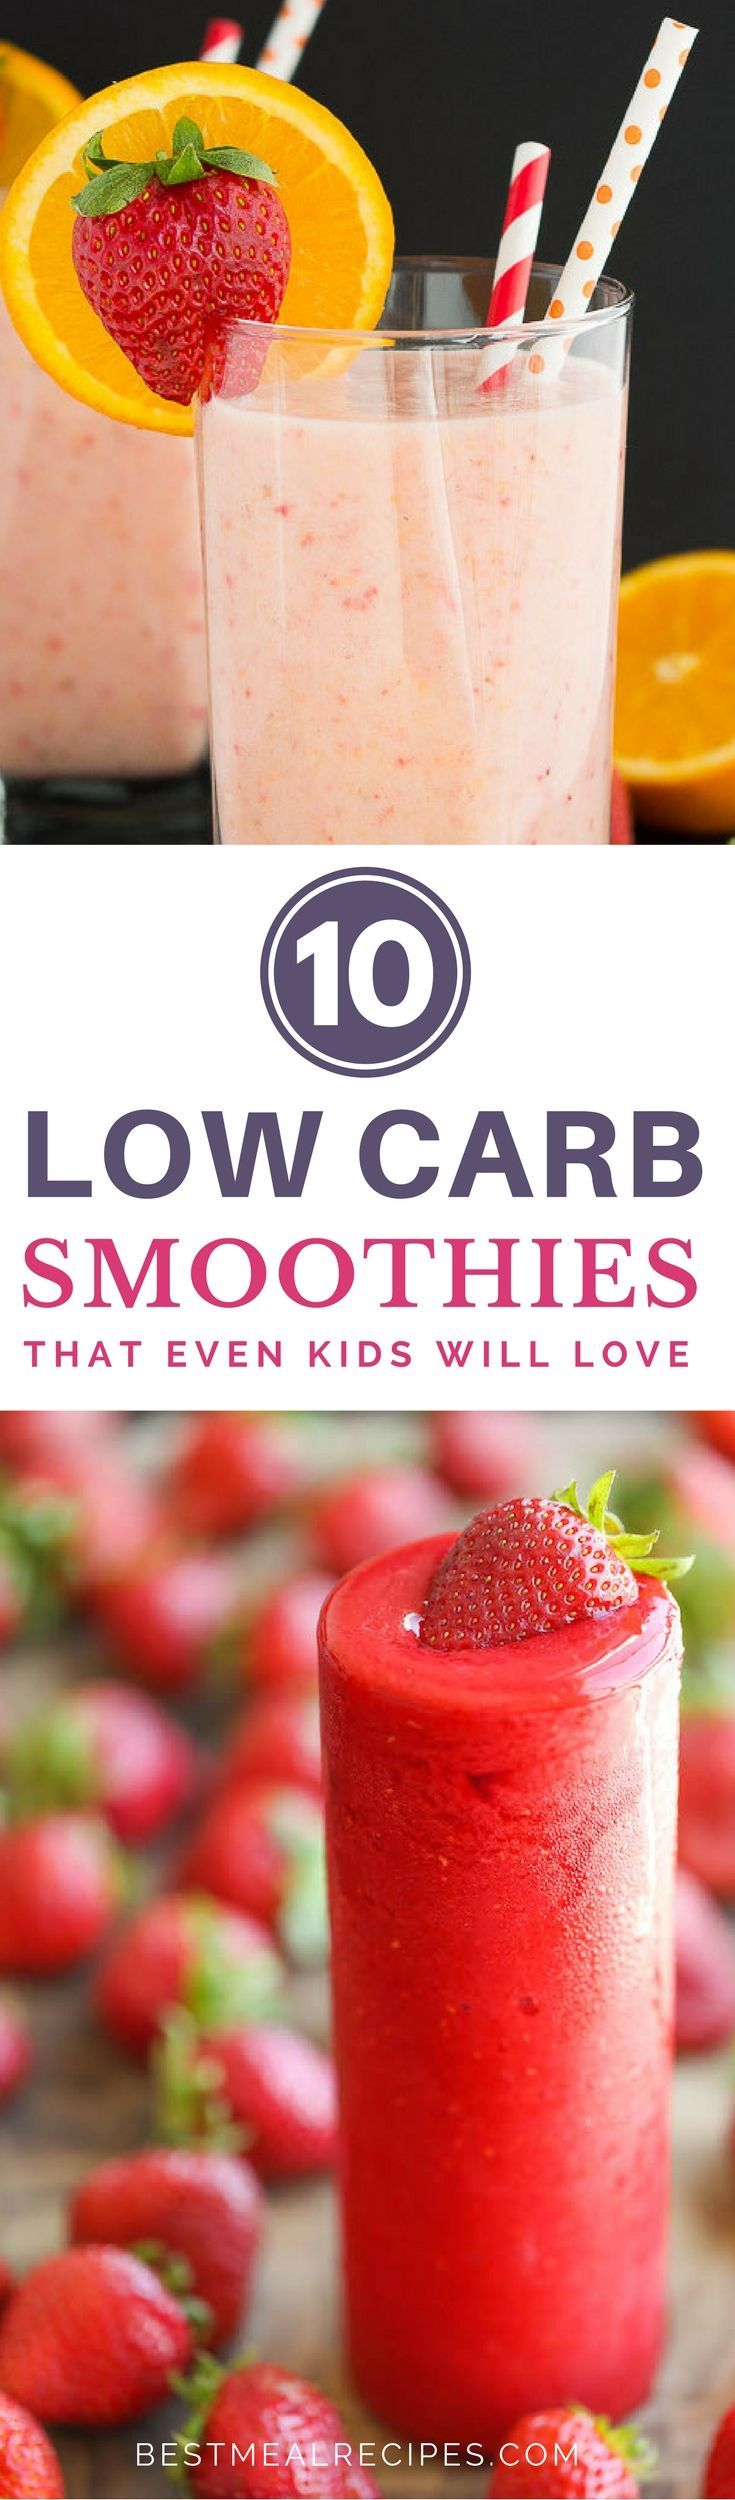 Tired of fruit smoothie shakes? Try these delectable vegetable, alcohol-inspired, and tropical low carb smoothies that will blow your mind. See it here: http://bestmealrecipes.com/2017/03/03/low-carb-smoothies-that-kids-will-love/